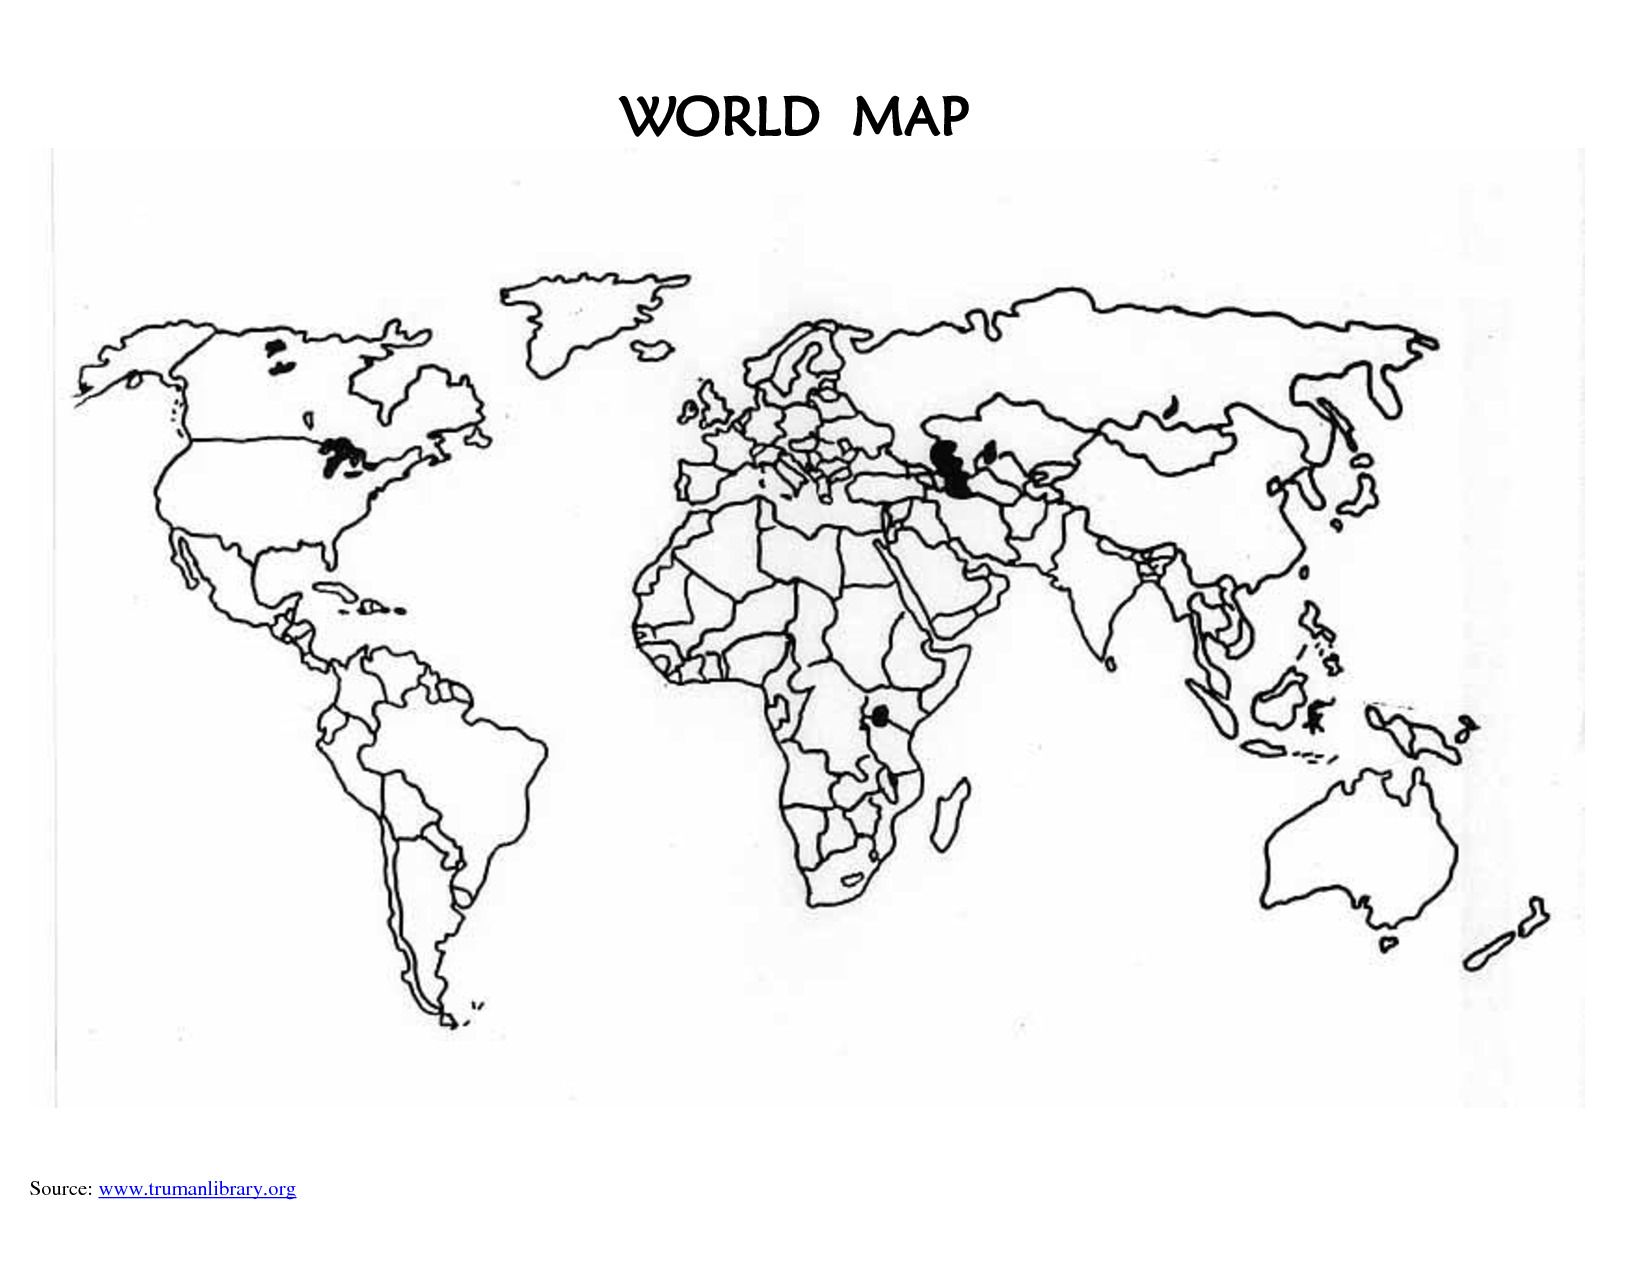 hight resolution of Blank Map Of Spanish Speaking Countries - World Map Atlas